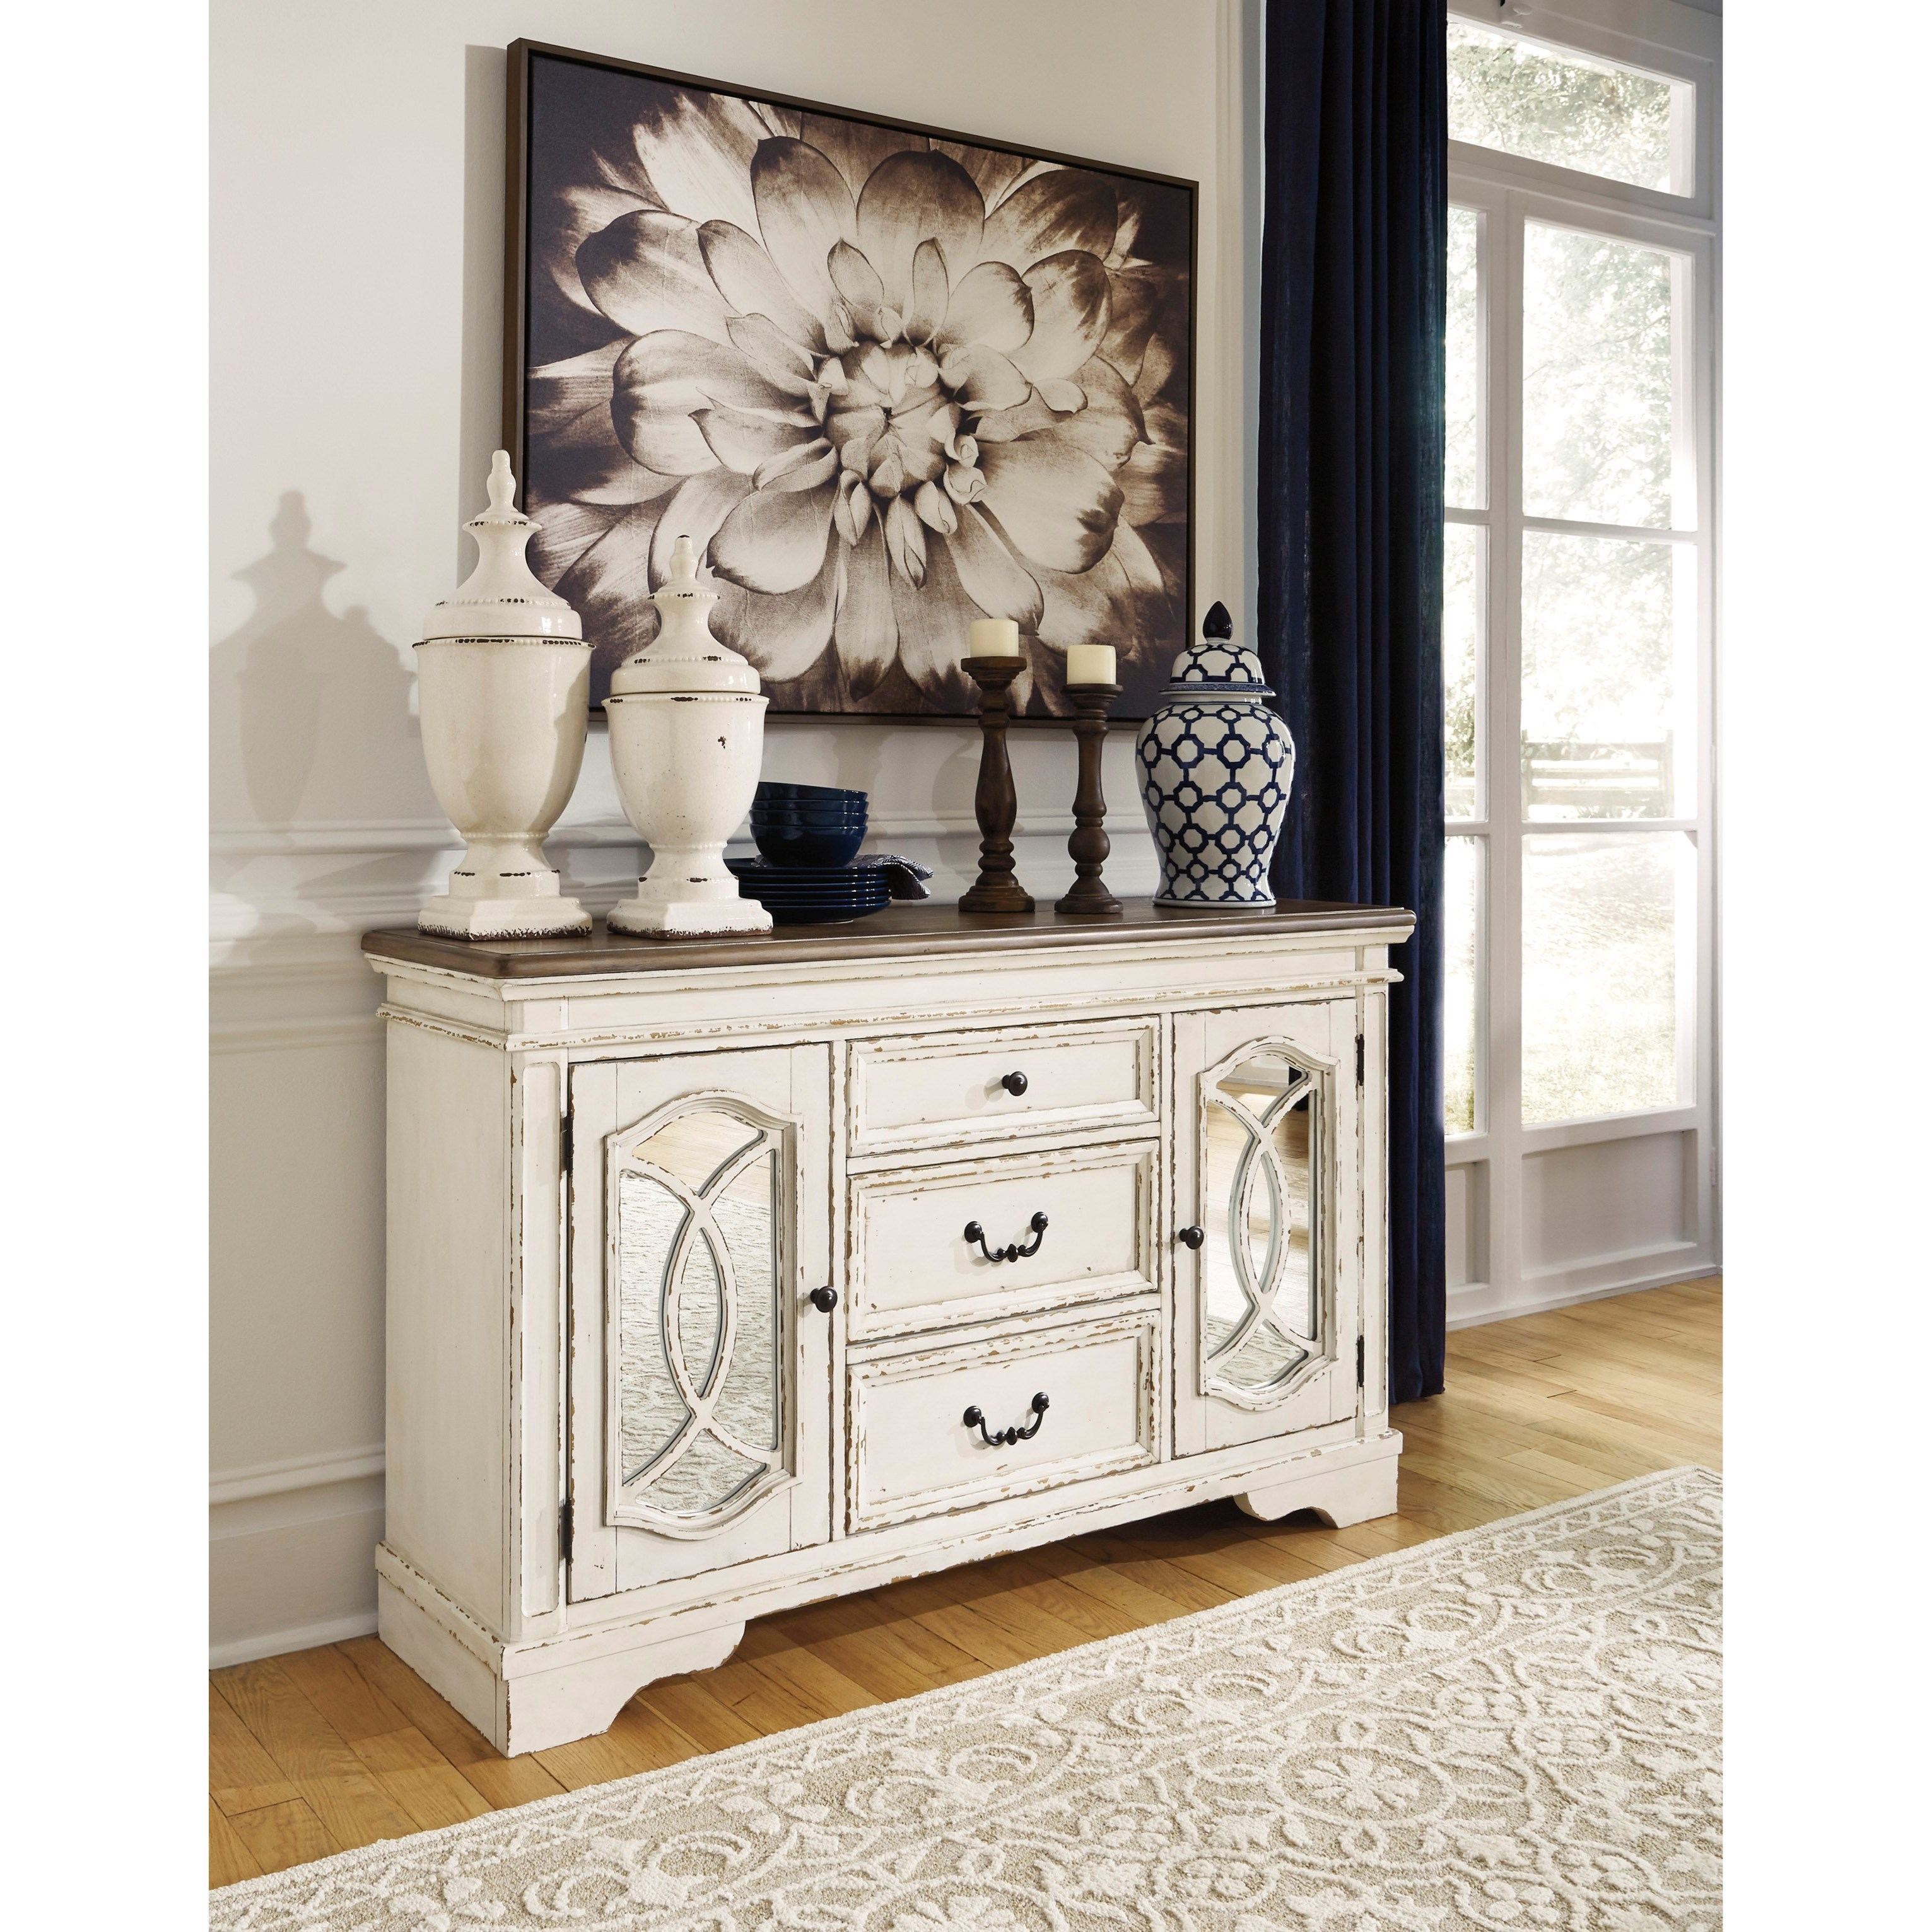 Ashley S Nest Decorating A Dining Room: Ashley (Signature Design) Realyn 3 Drawer 2 Door Dining